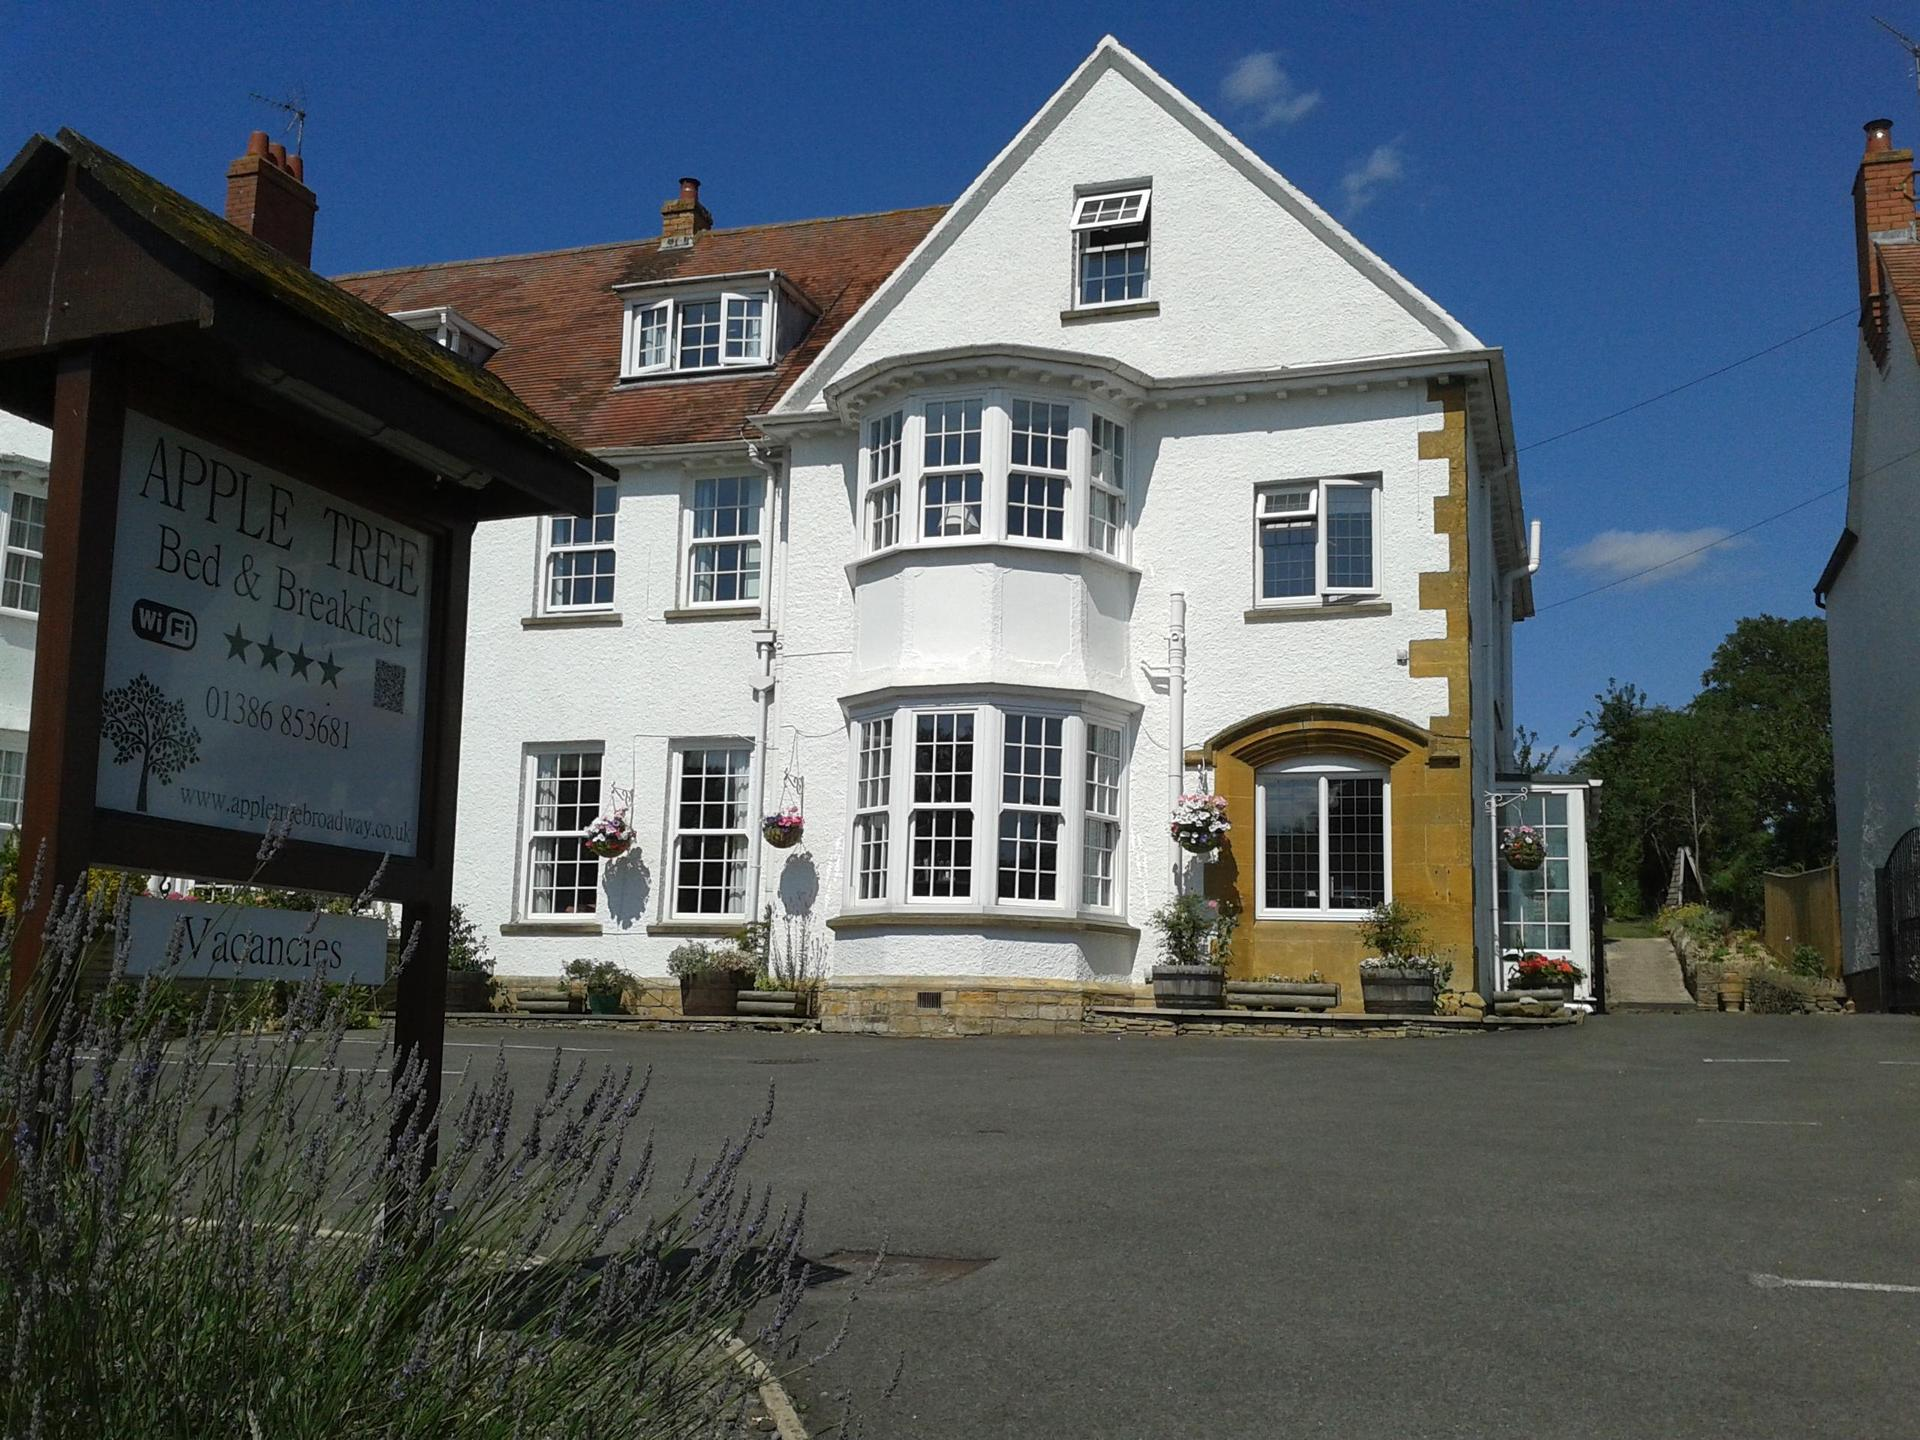 Apple Tree Bed and Breakfast - 10 per cent off for 4 nights or more